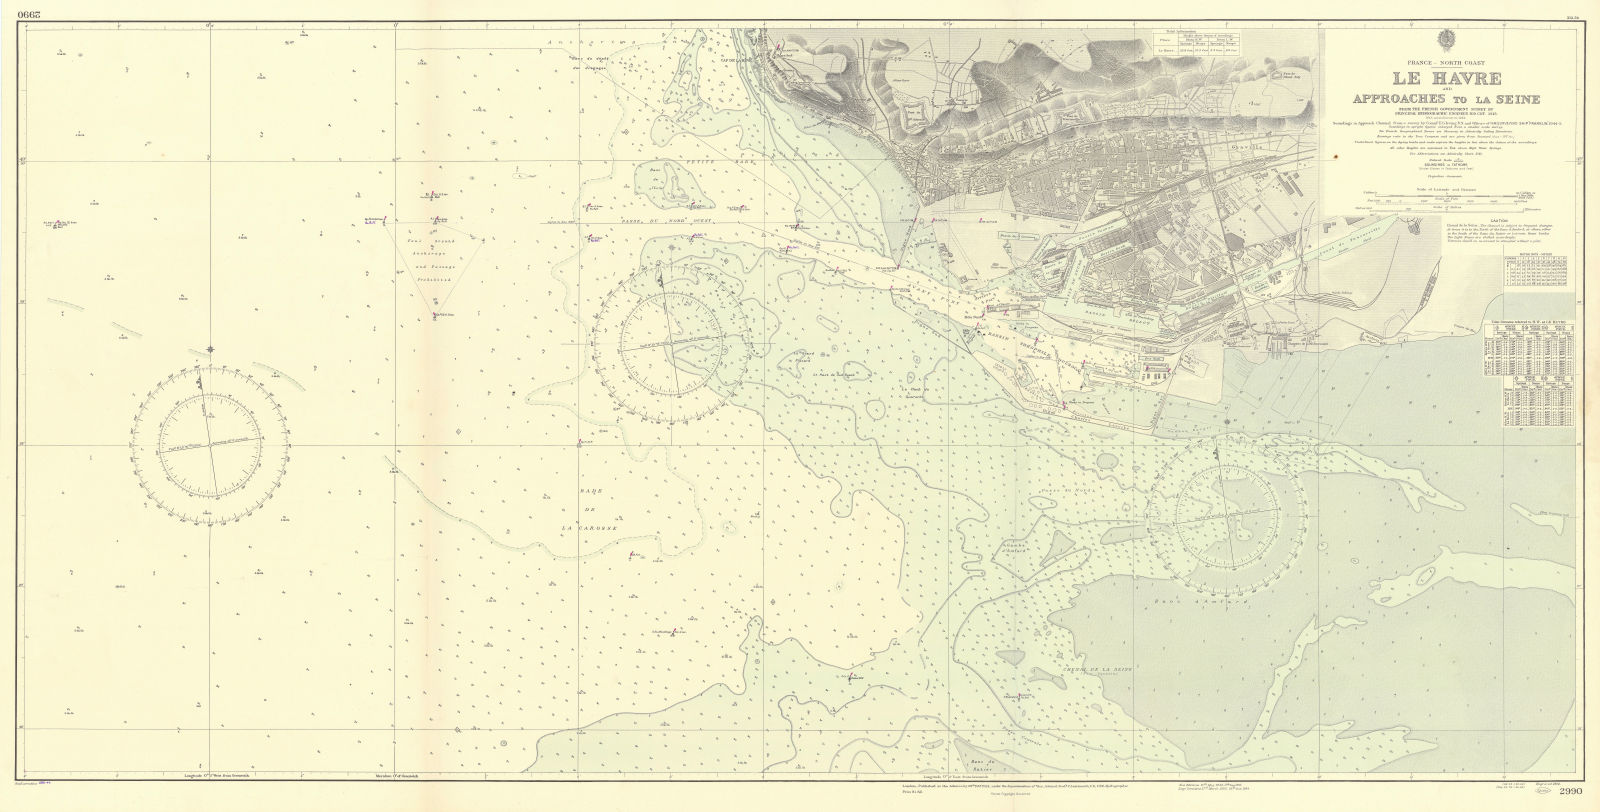 Le Havre & Seine approaches. Seine-Maritime. ADMIRALTY sea chart 1924 (1955) map